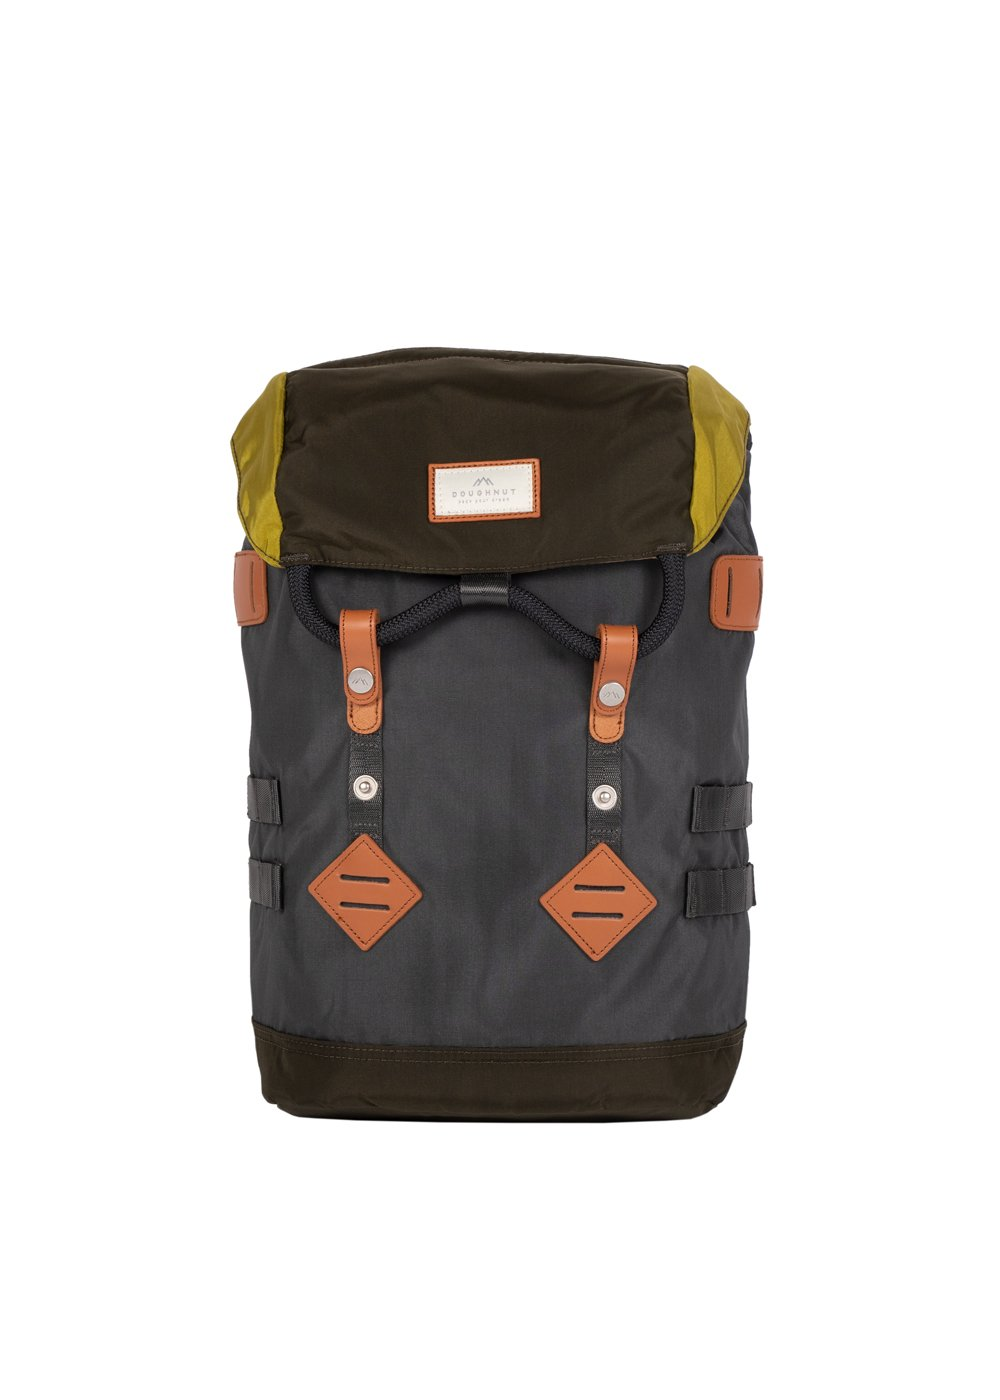 Colorado Small Glossy Charcoal x Olive